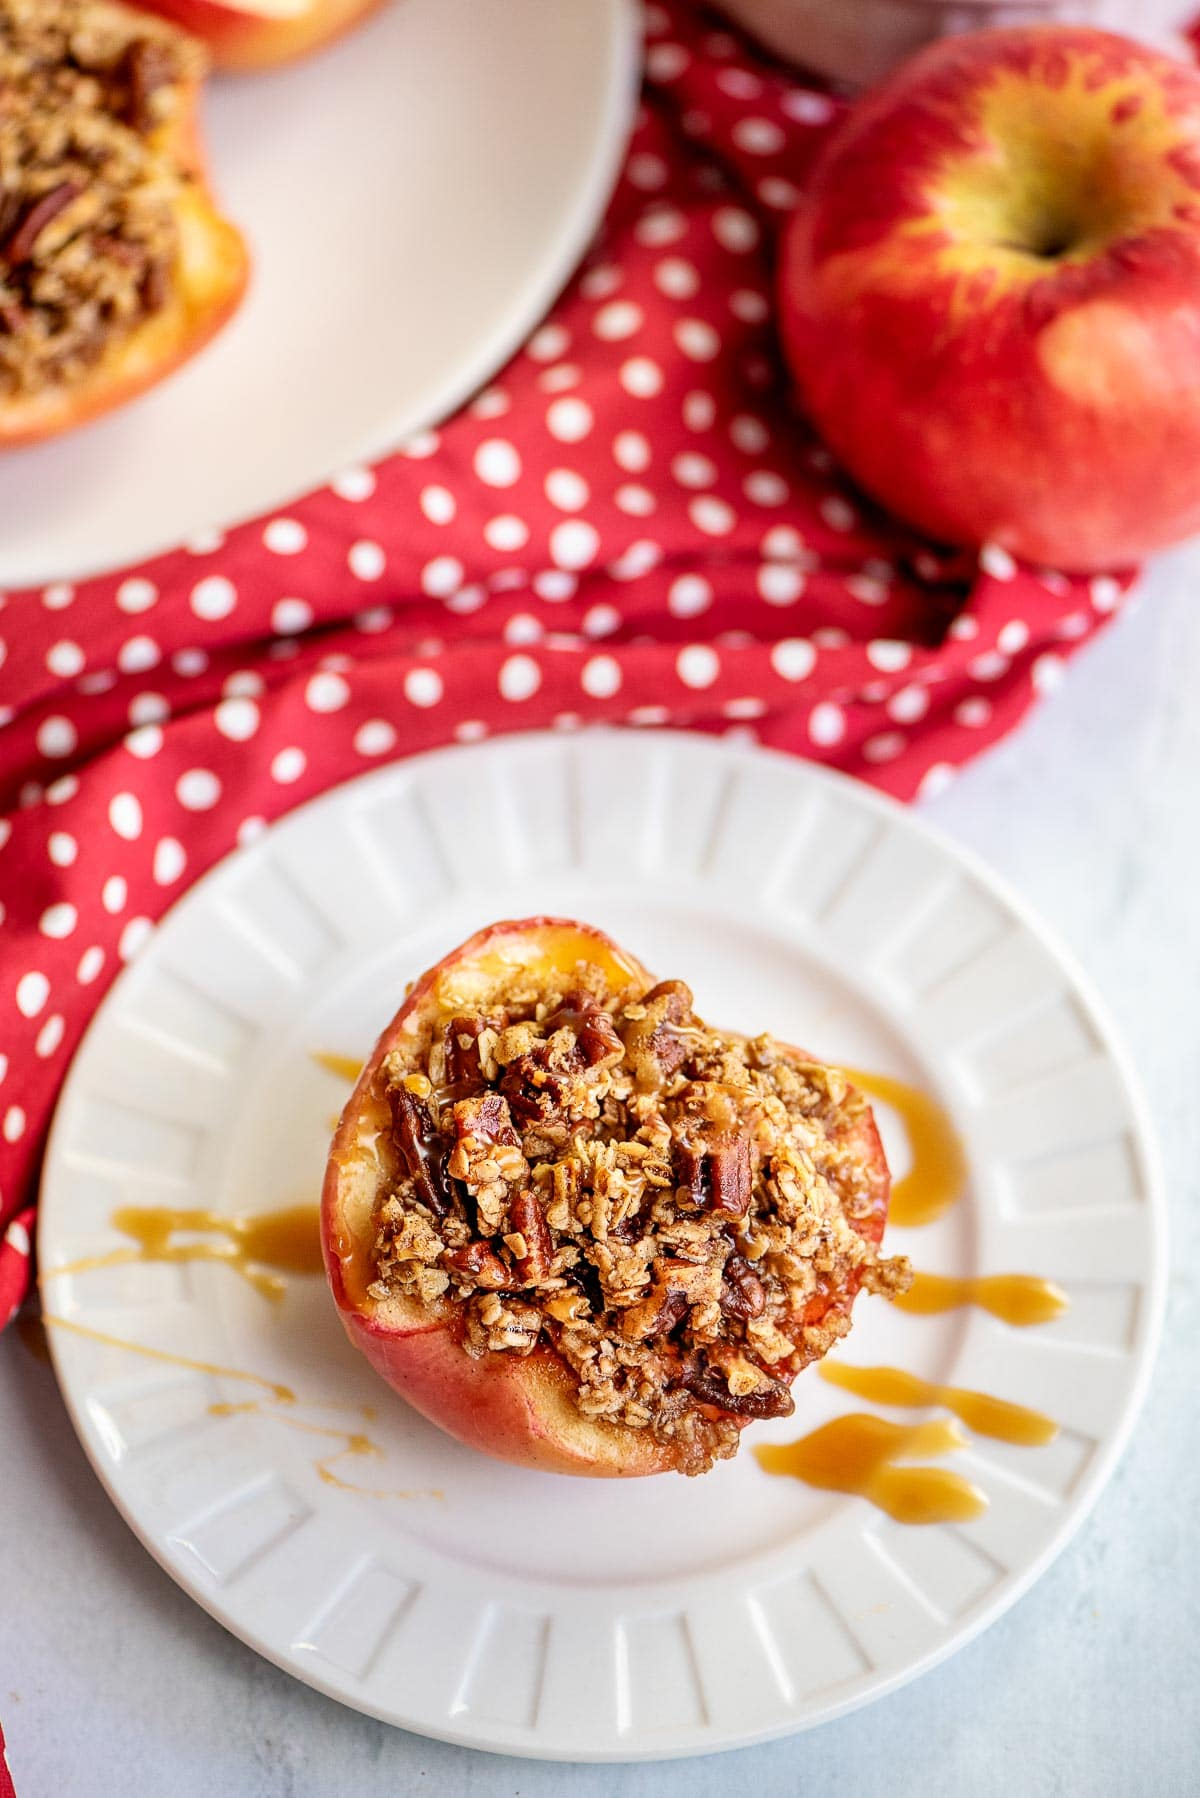 baked apple on plate